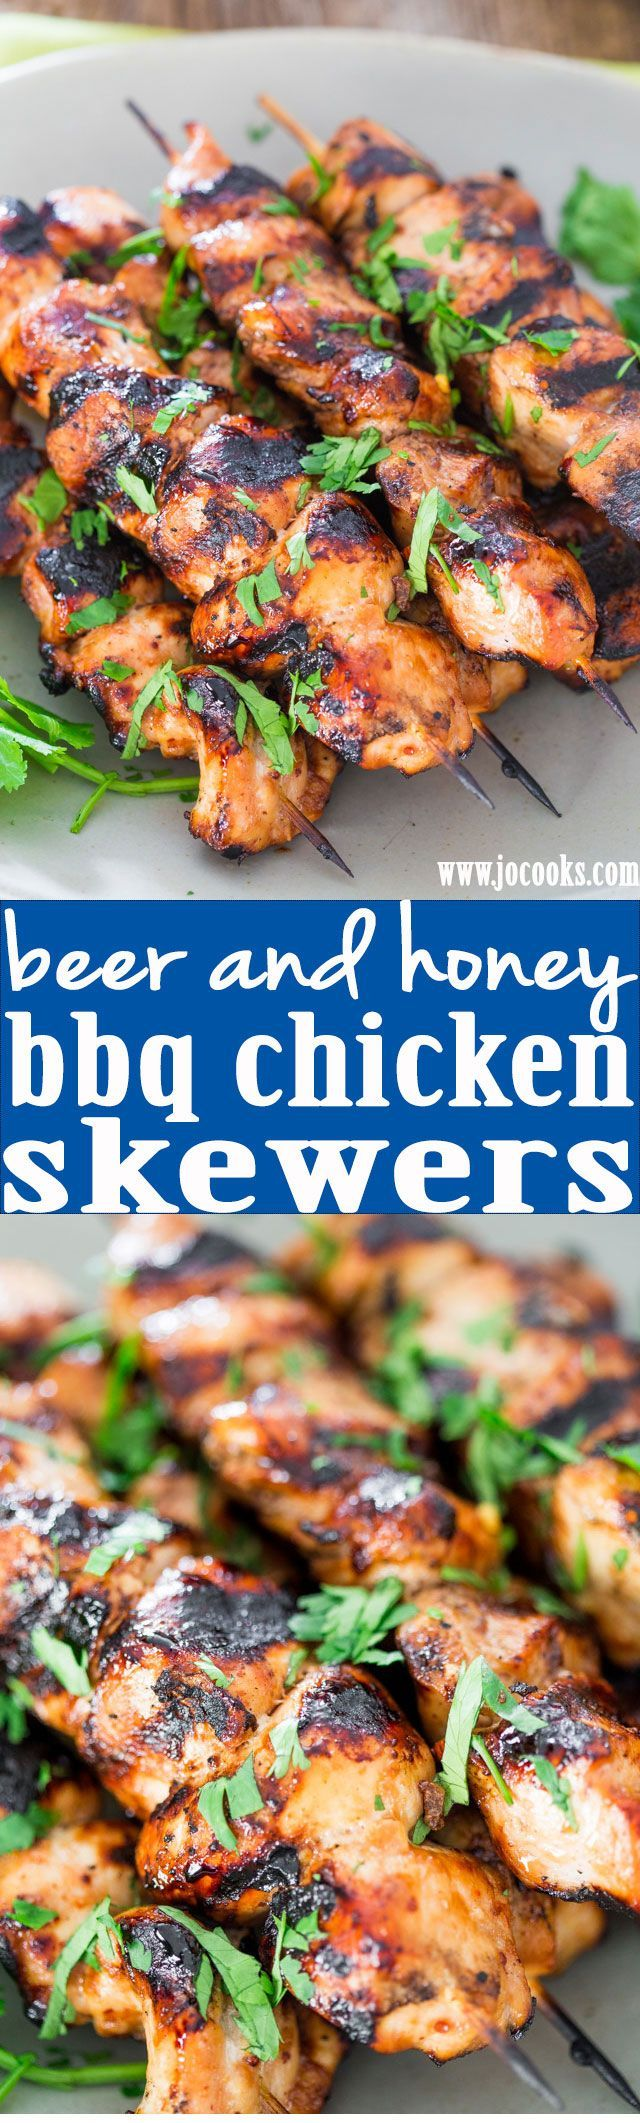 Chicken  u0026 beer recipes easy